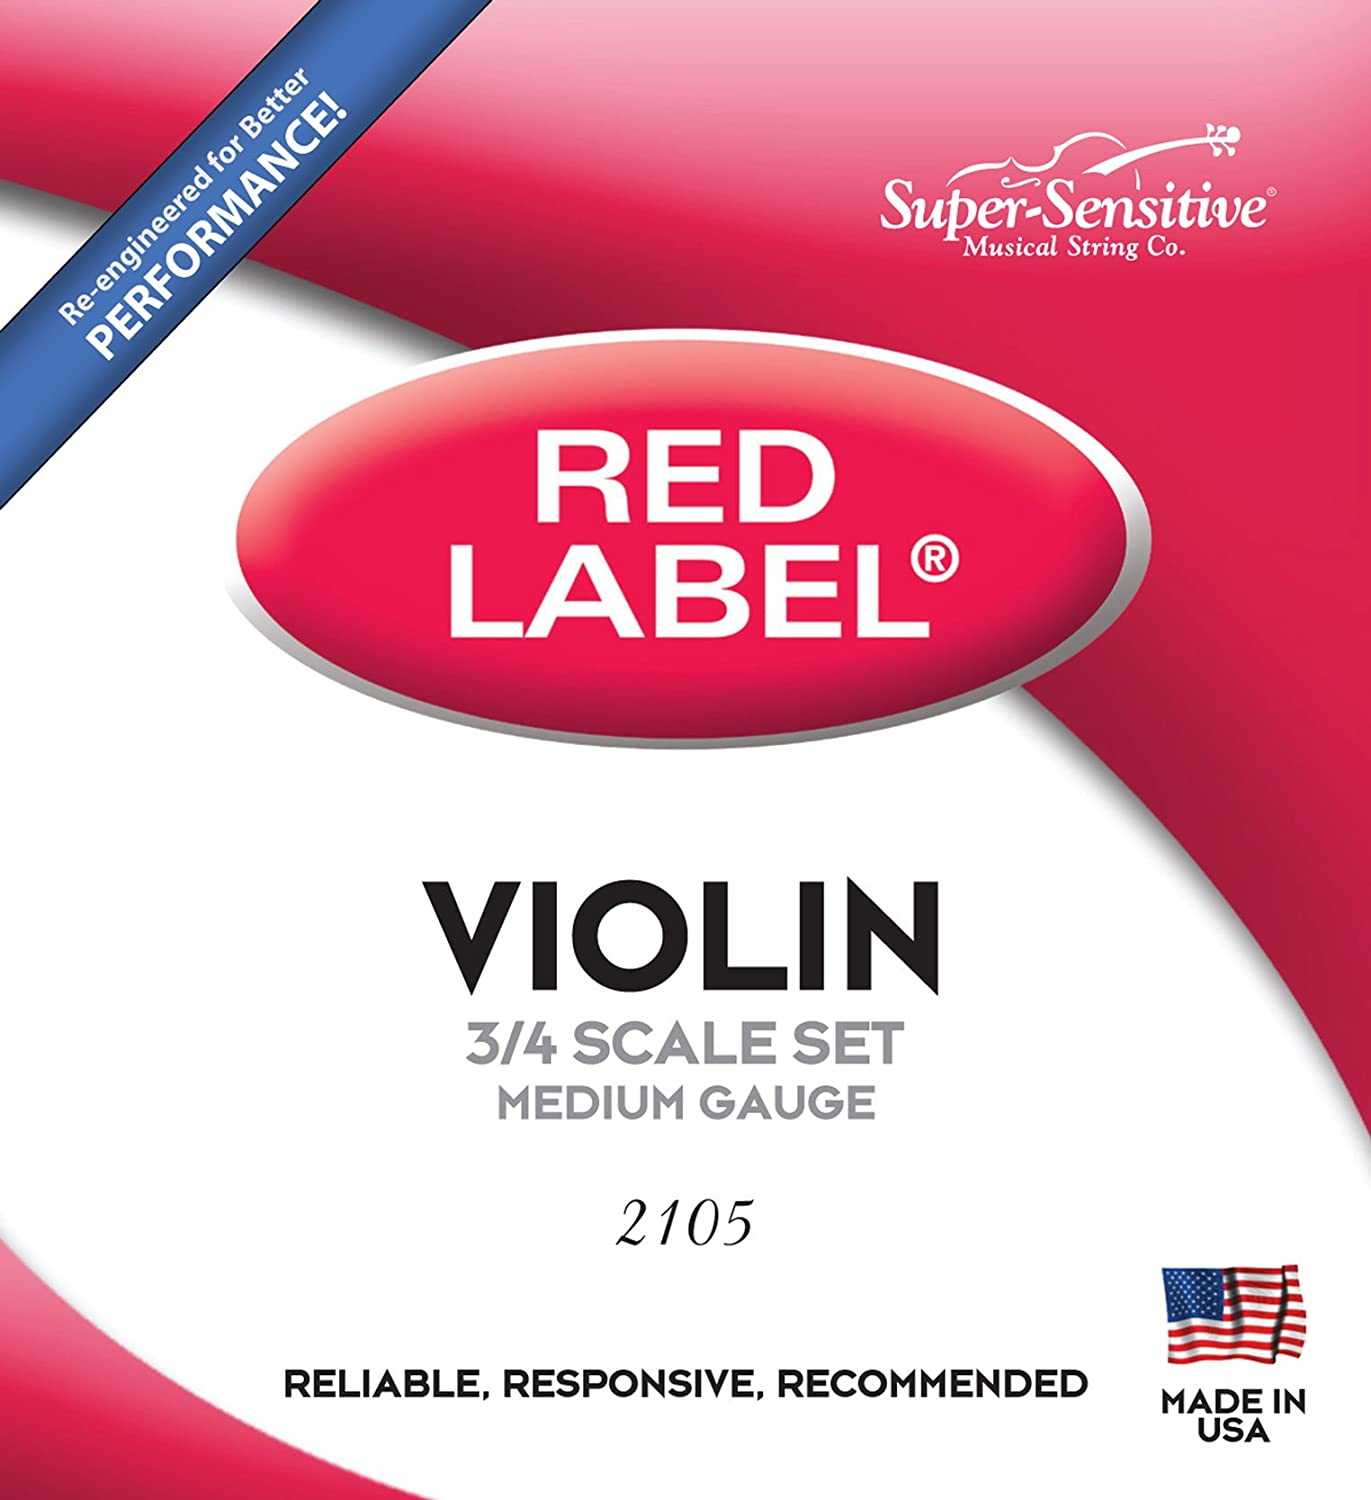 B0002D07FI Super Sensitive Steelcore 3/4 Violin Strings: Set 71TJOF1exWL